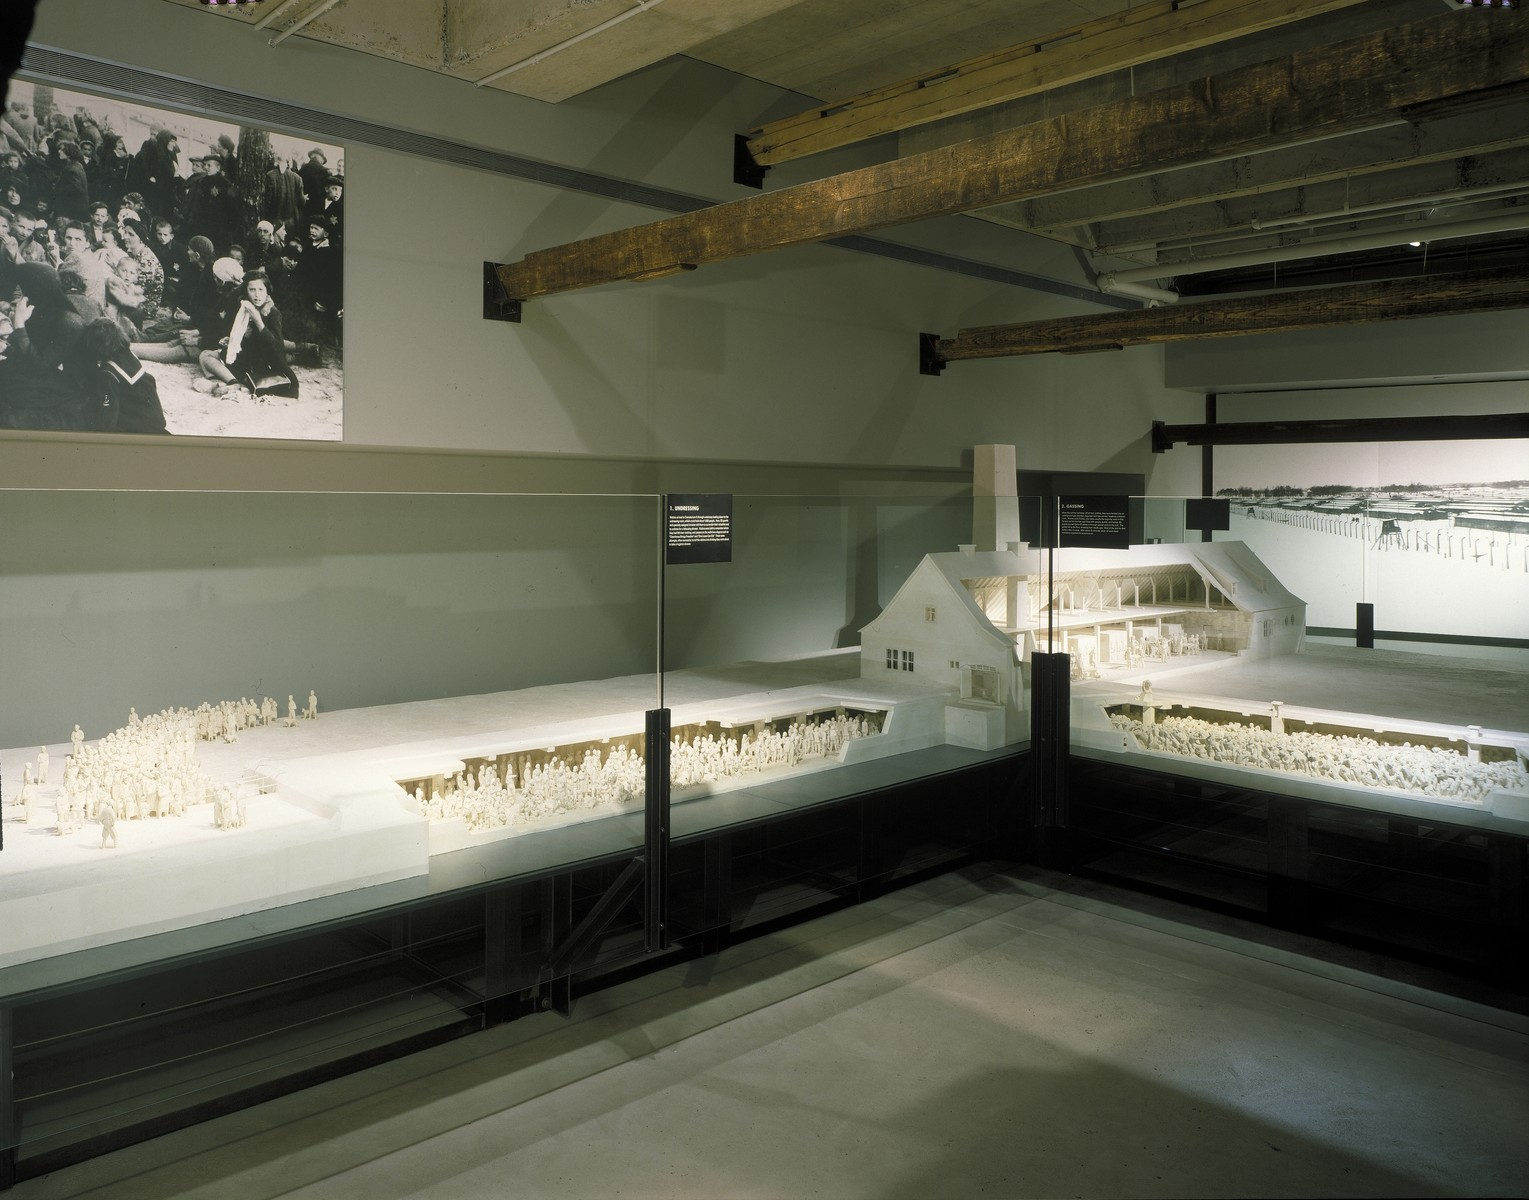 View of the scale model of crematorium II at Auschwitz-Birkenau on display in the permanent exhibition of the U.S. Holocaust Memorial Museum.  The model was sculpted by Mieczyslaw Stobierski based on contemporary documents and the trial testimonies of SS guards.  This model, which is a recreation of the sculptor's model that has been on display in the State Museum of Auschwitz for many years, was commissioned by the U.S. Holocaust Memorial Museum for placement in the permanent exhibition.